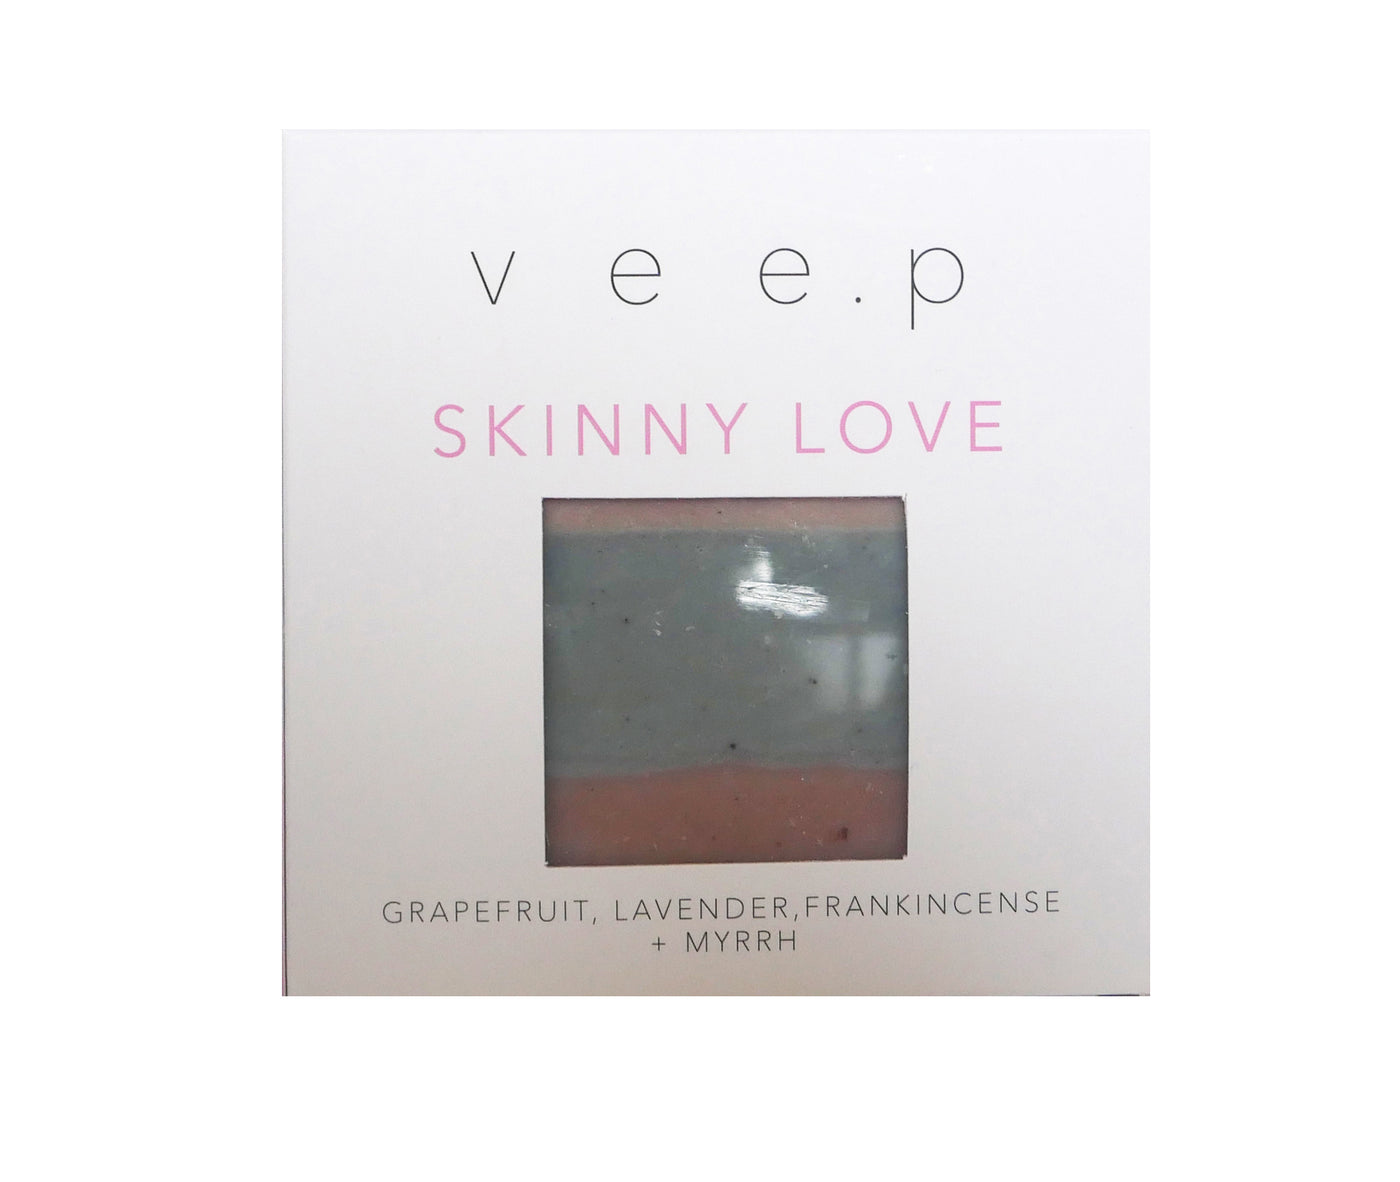 SKINNY LOVE SOAP BAR - Pink grapefruit, lavender, frankincense & myrrh